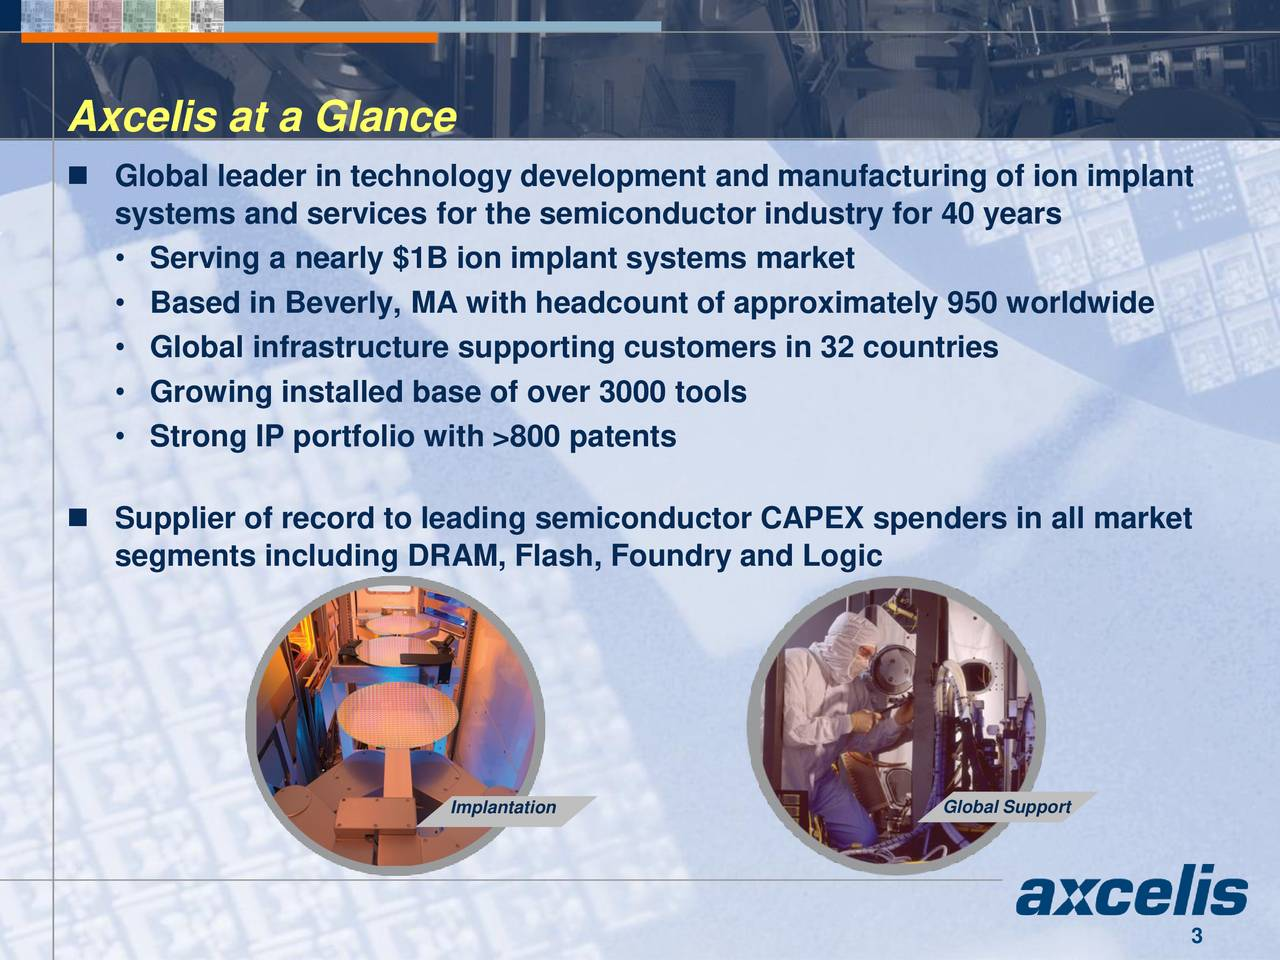  Global leader in technology development and manufacturing of ion implant systems and services for the semiconductor industry for 40 years • Serving a nearly $1B ion implant systems market • Based in Beverly, MA with headcount of approximately 950 worldwide • Global infrastructure supporting customers in 32 countries • Growing installed base of over 3000 tools • Strong IP portfolio with >800 patents  Supplier of record to leading semiconductor CAPEX spenders in all market segments including DRAM, Flash, Foundry and Logic Implantation Global Support 3